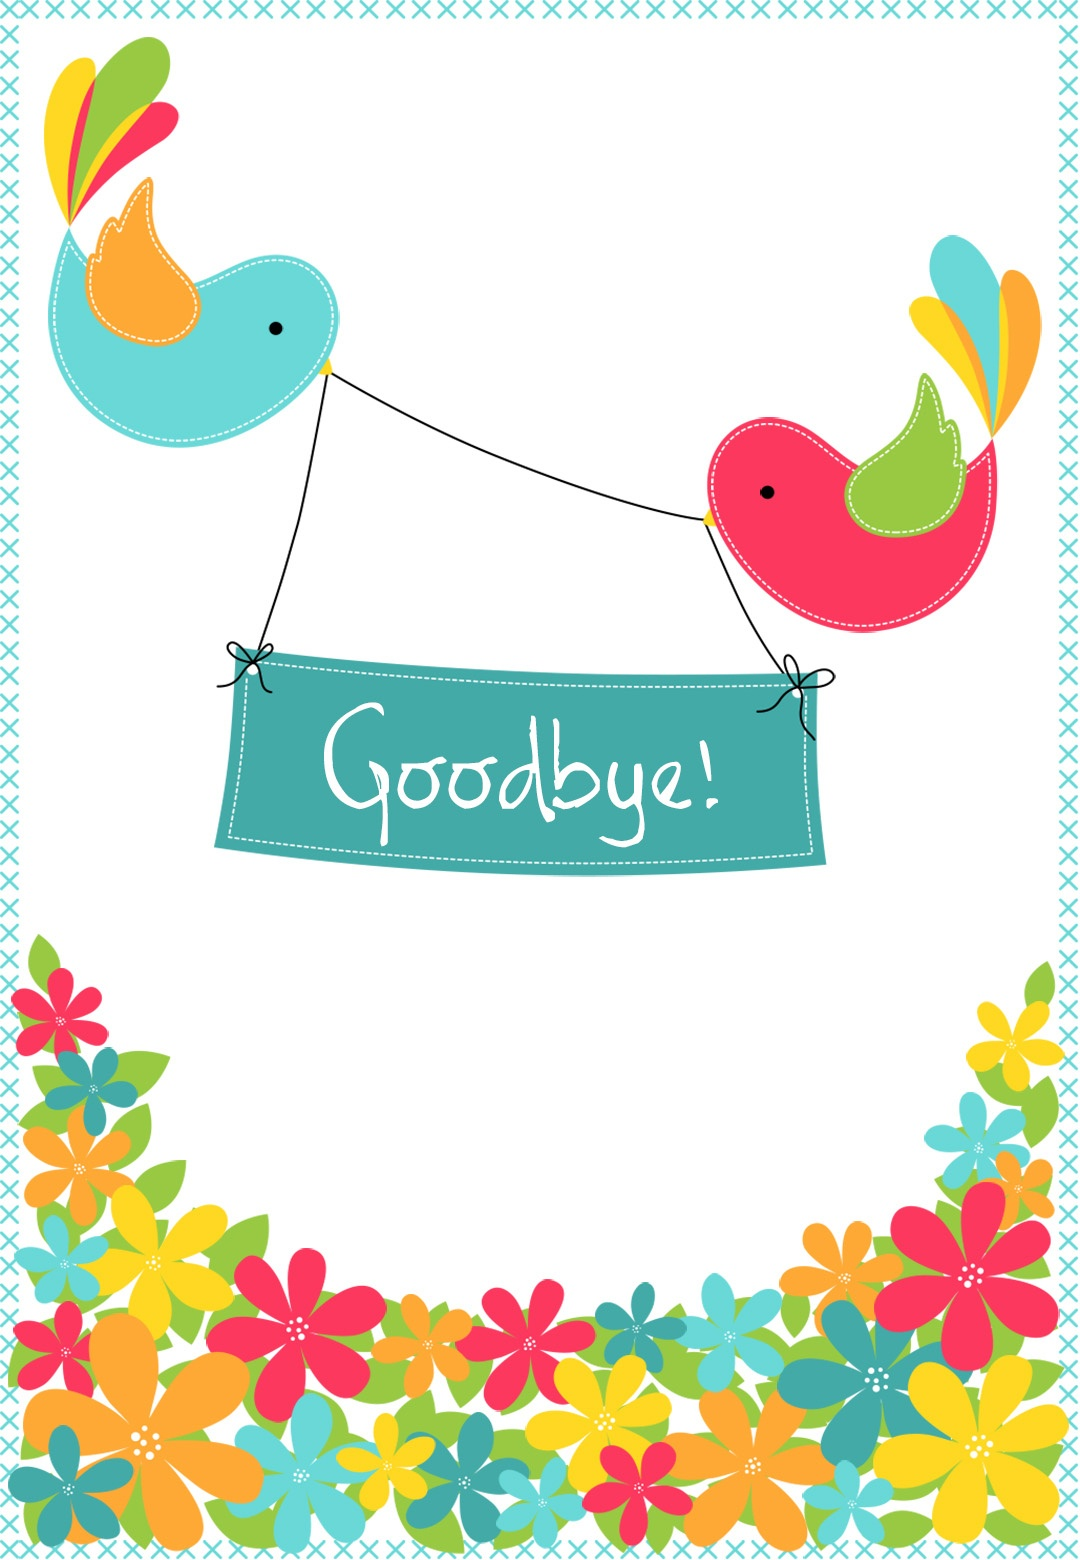 Goodbye From Your Colleagues - Good Luck Card (Free) | Greetings Island - Free Printable We Will Miss You Greeting Cards